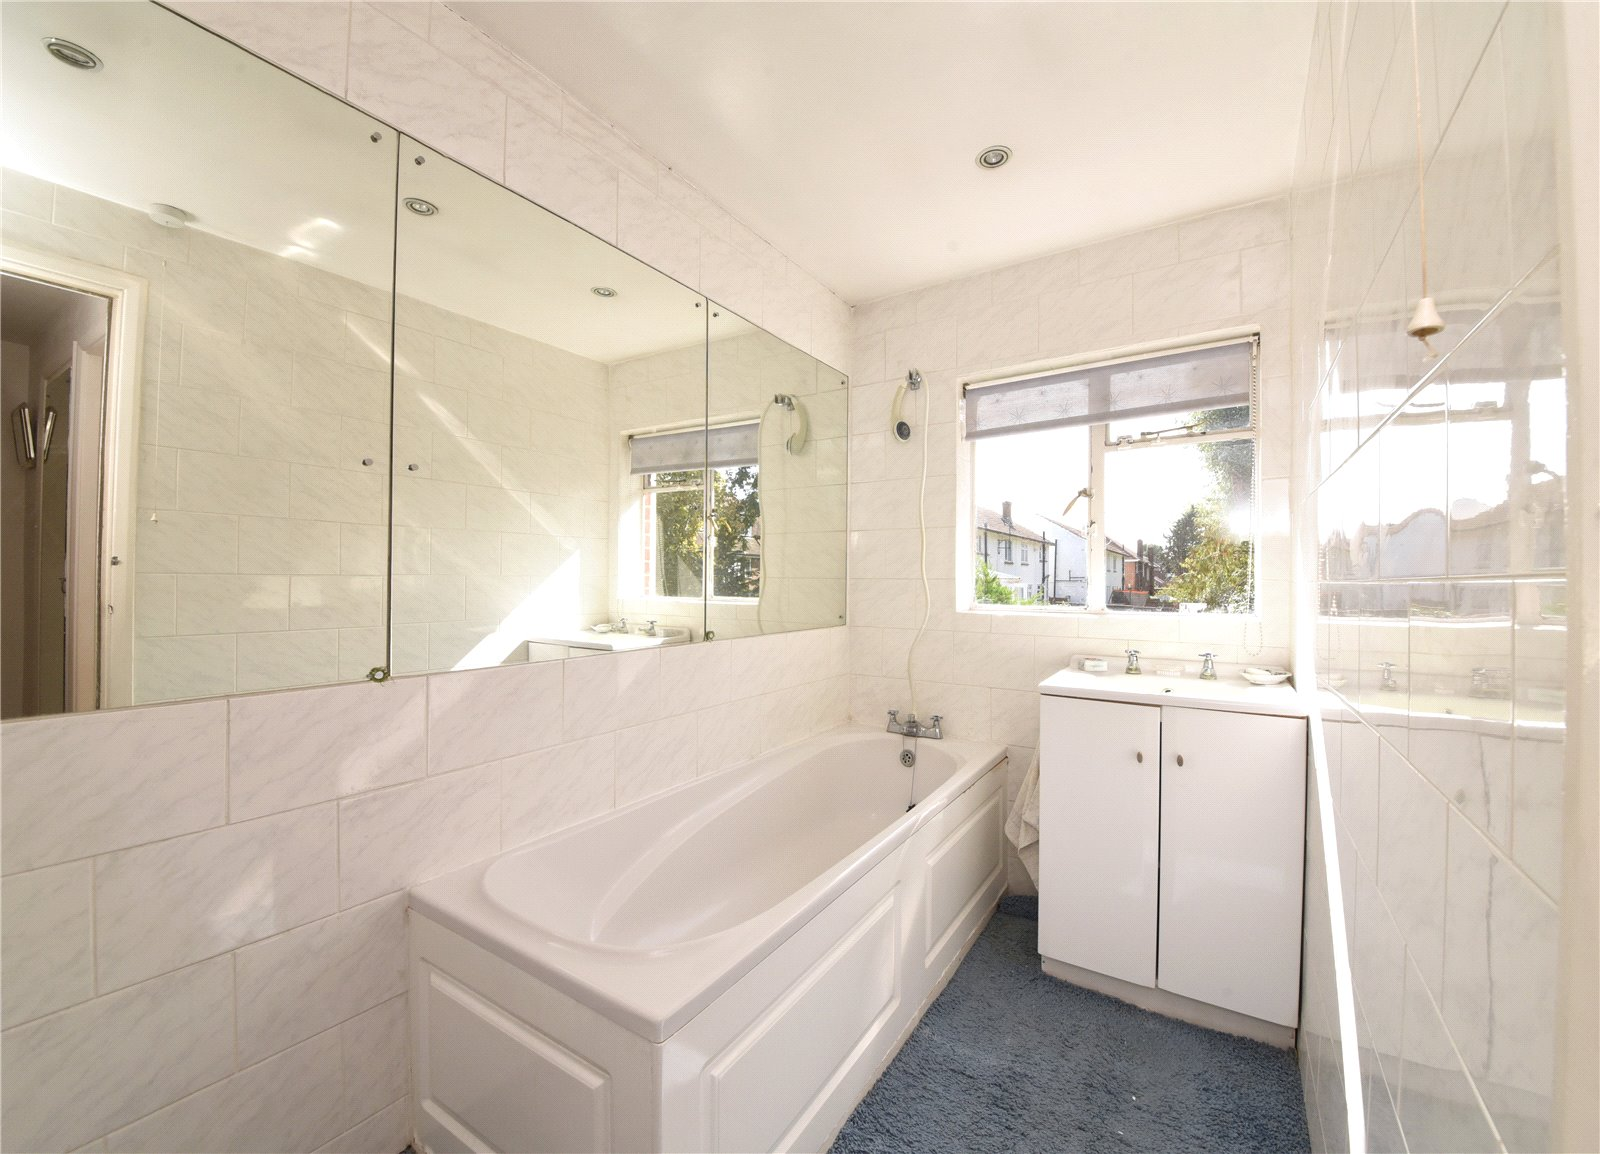 3 bed house for sale in West Finchley, N3 1PB 3